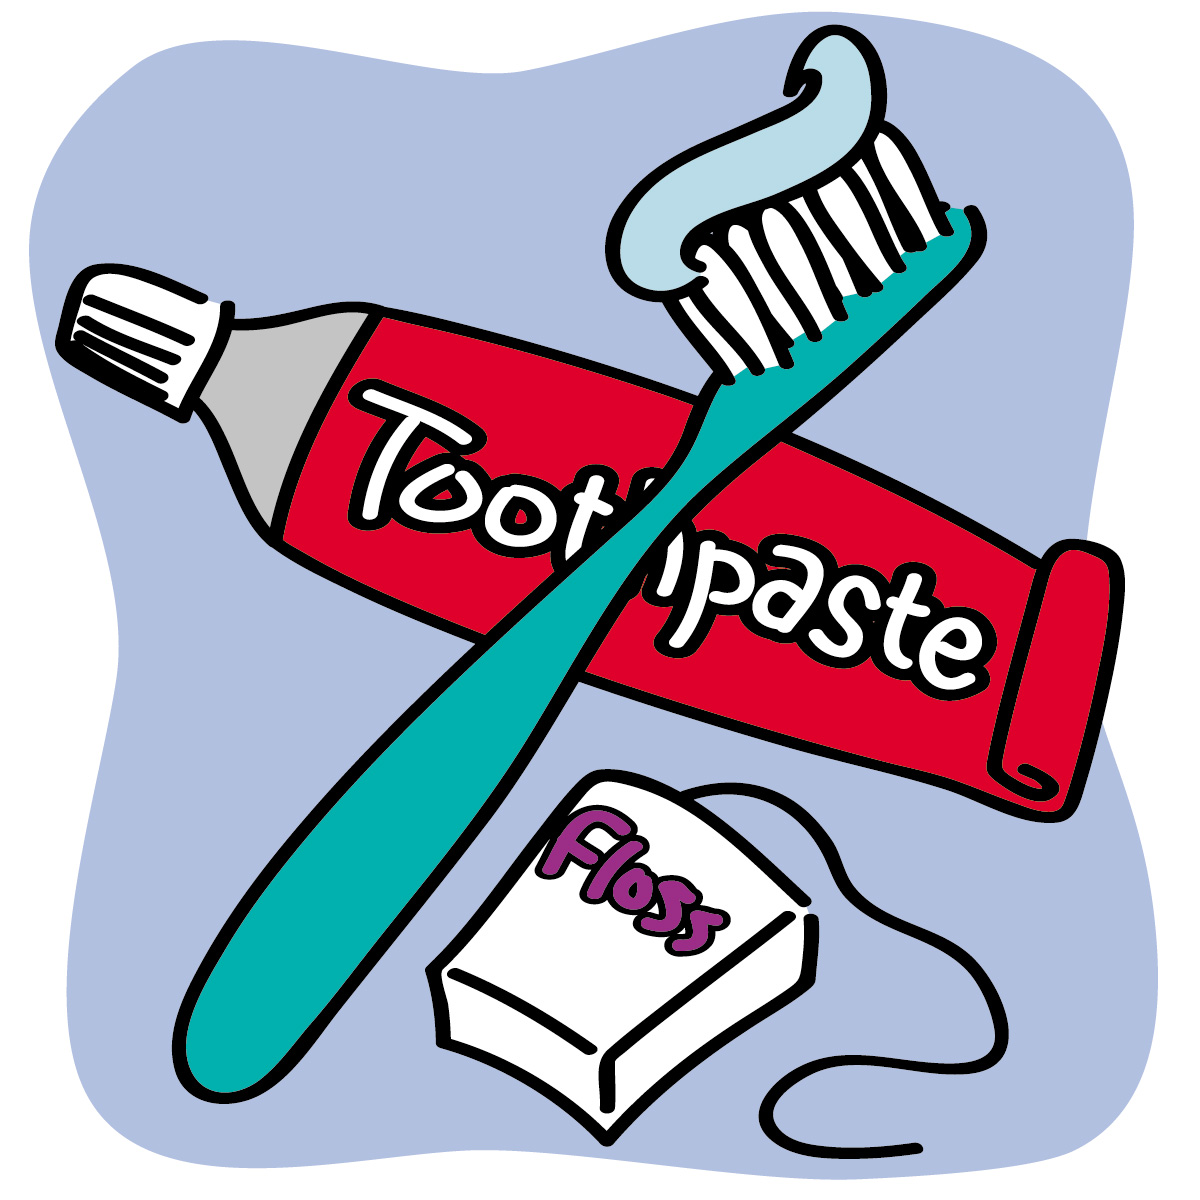 Clip Art Brush Teeth Clip Art brush your teeth clipart kid of you can use these free cliparts for your